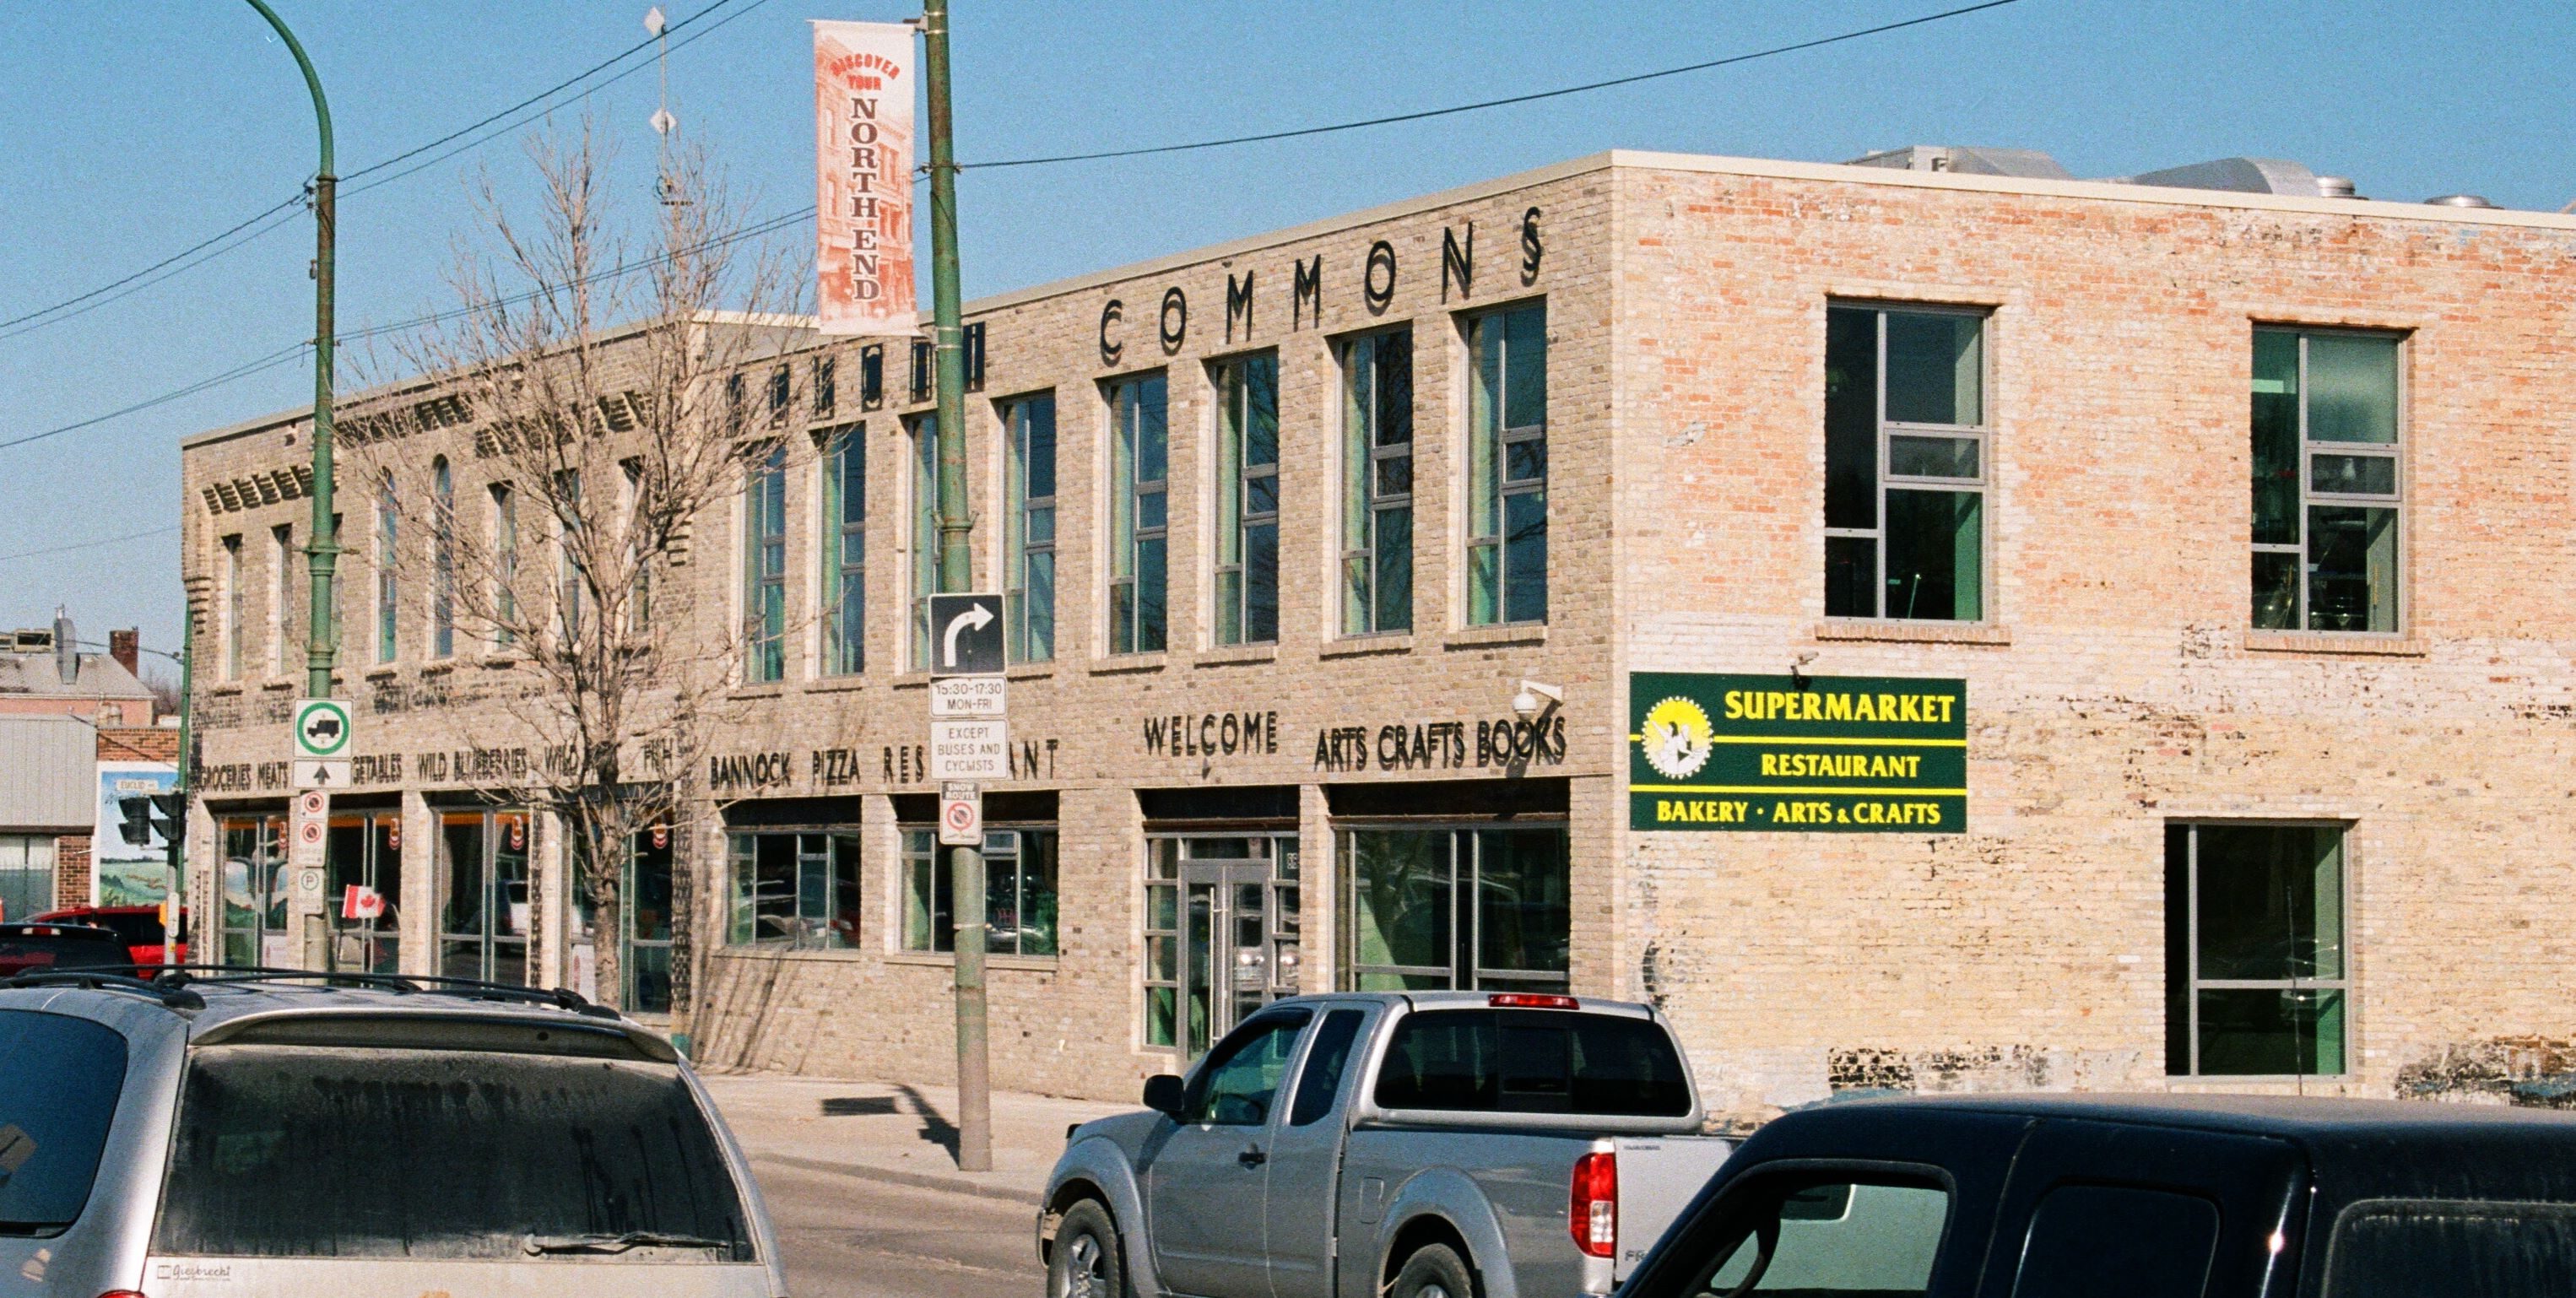 Neechi Commons (Winnipeg, Manitoba)